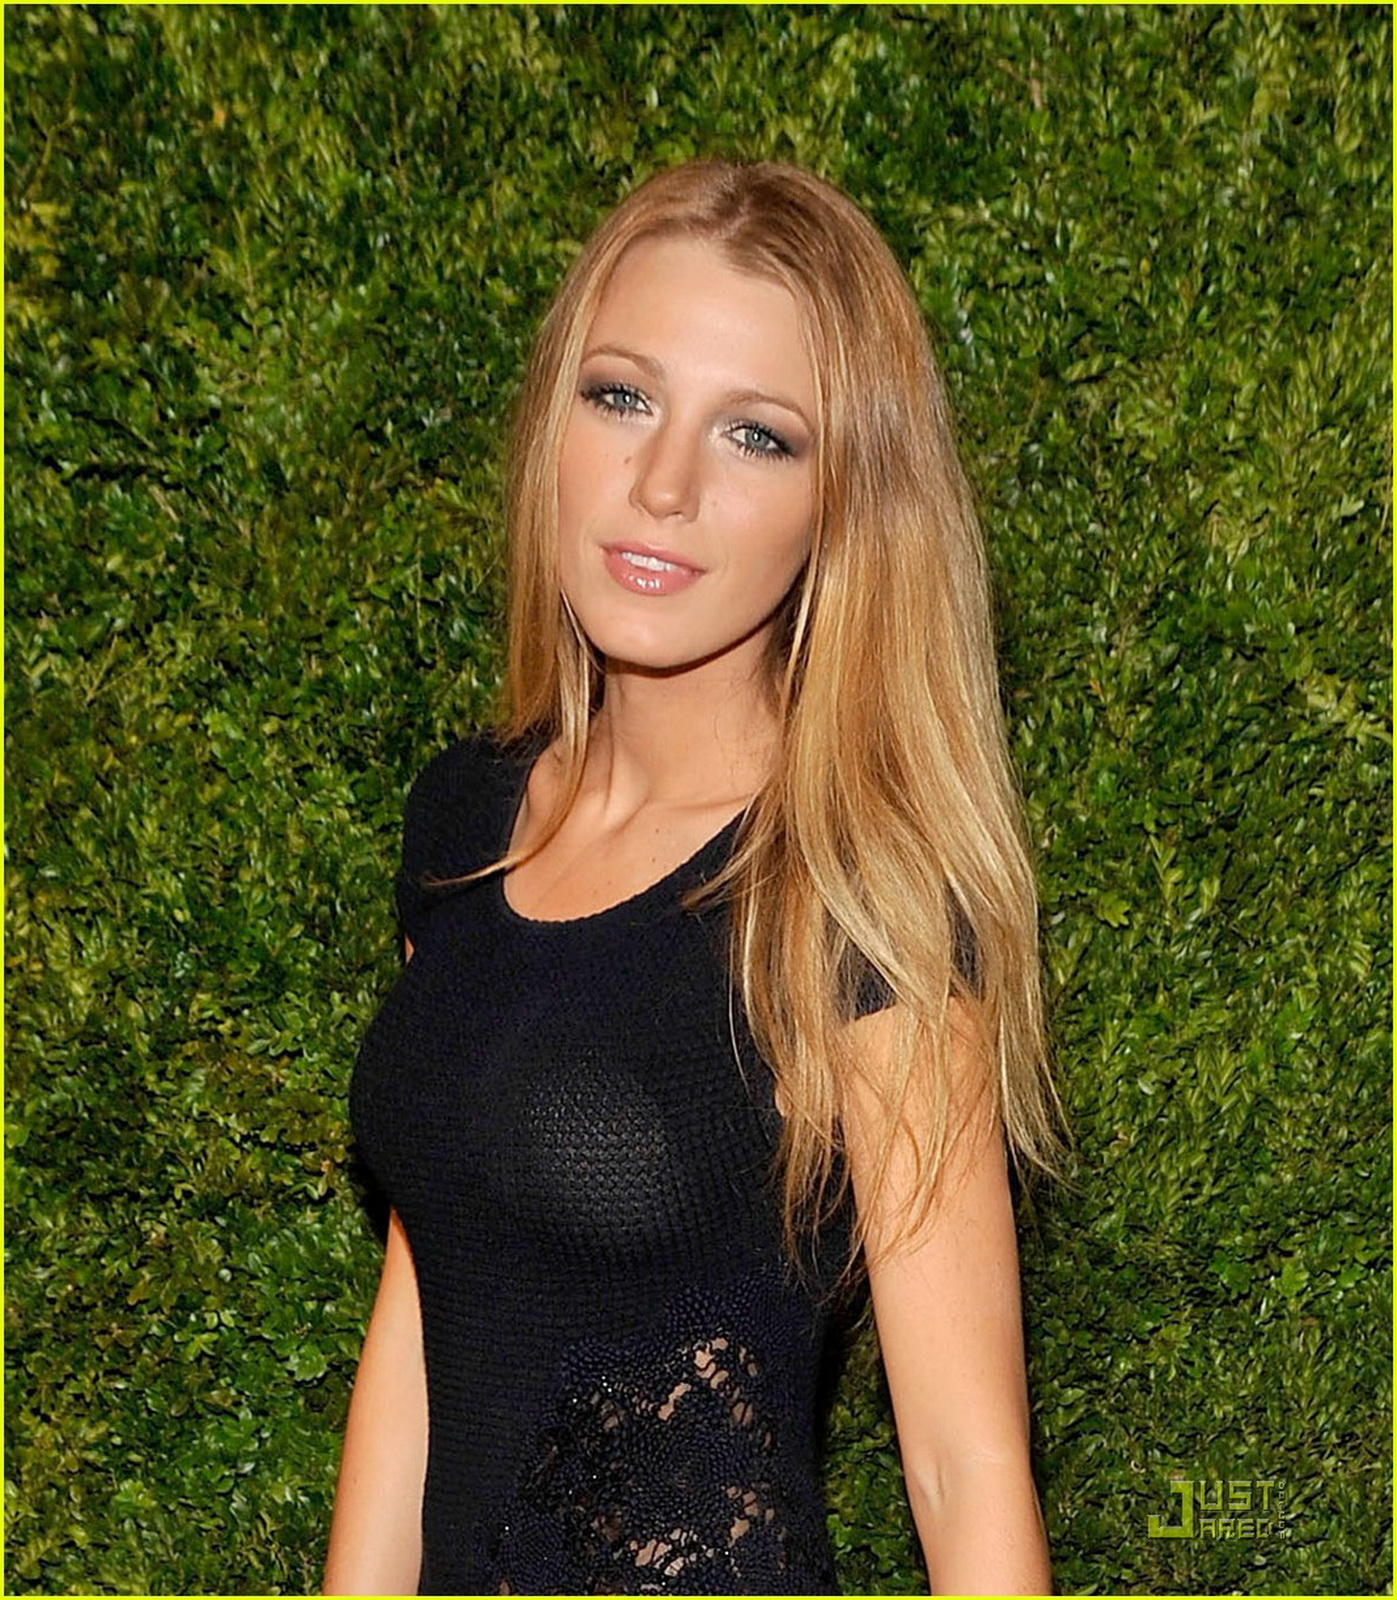 http://4.bp.blogspot.com/_Jgc-vQ1t70k/TONqSg655aI/AAAAAAAAAHg/-jBfqjkkAms/s1600/Blake_Lively_see_through_tight_dress_bra_visible_CFDA_Vogue_Fashion_Fund_2.jpg